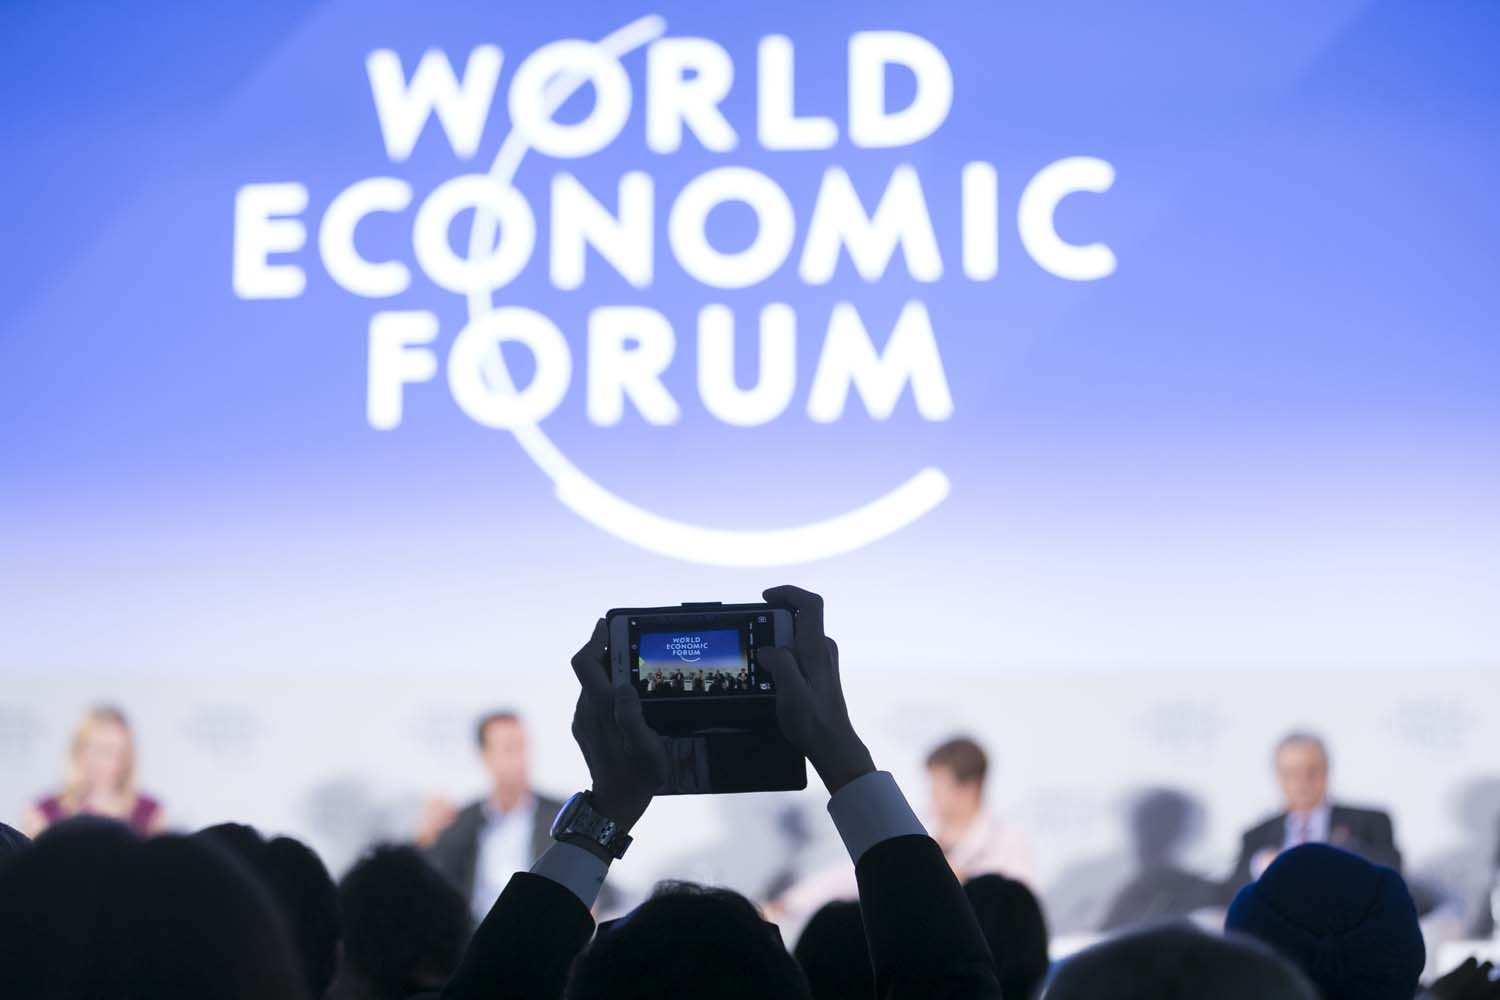 World Economic Forum Conference Photographer in New York City